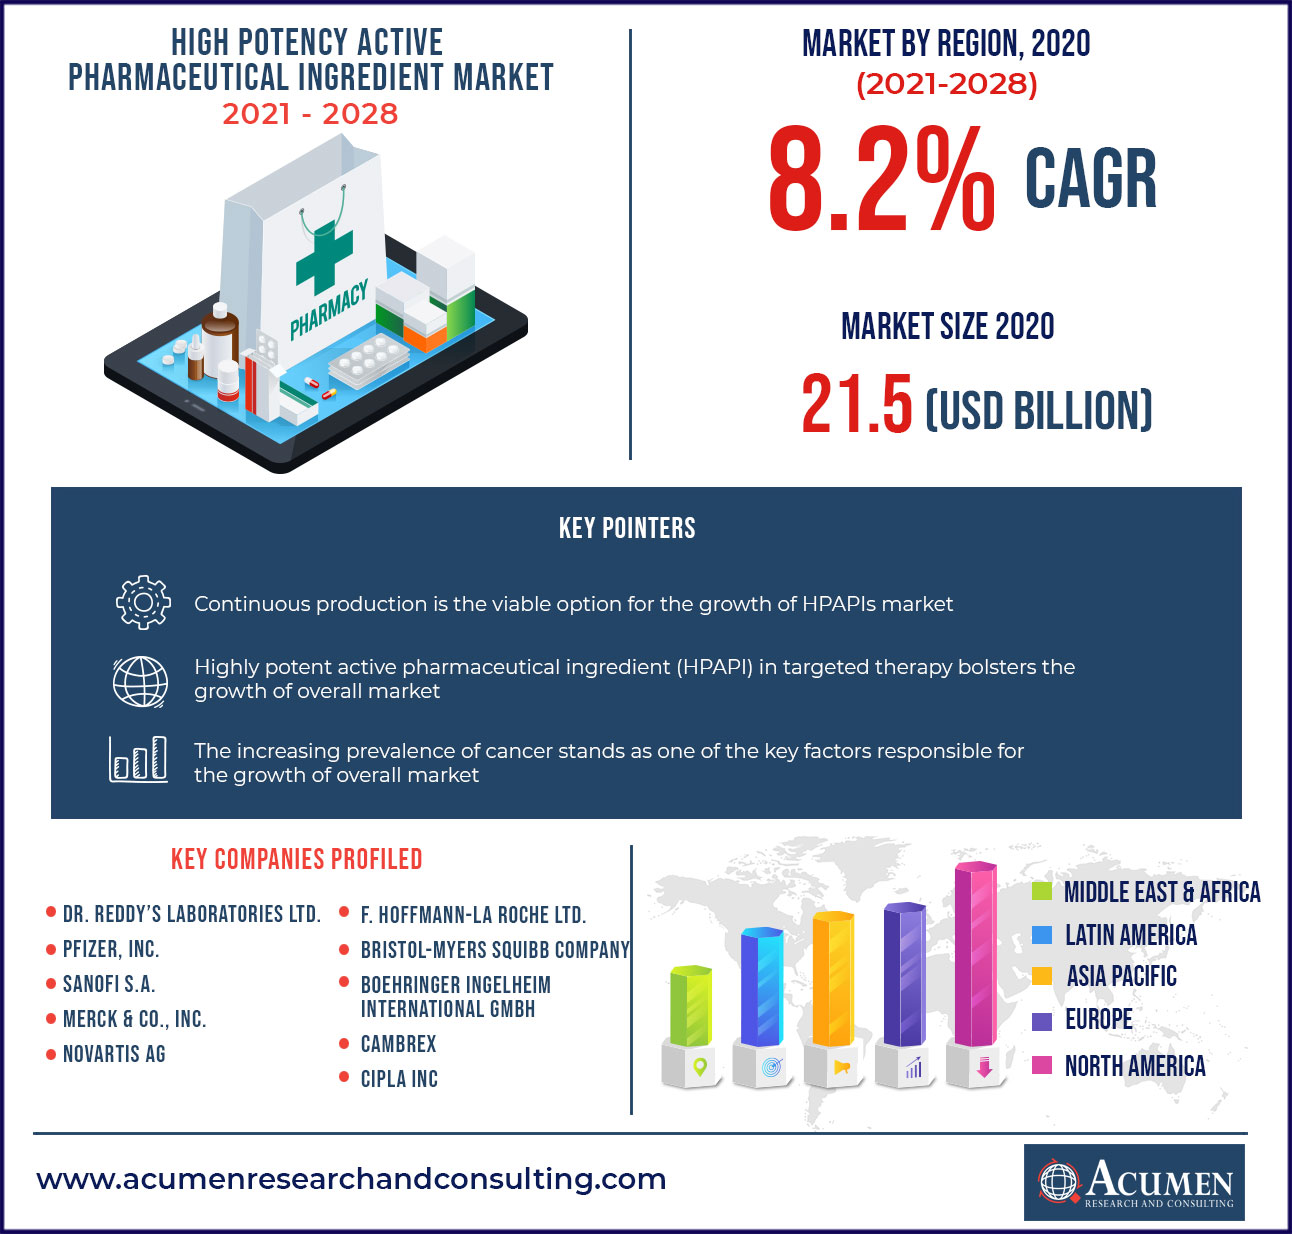 High Potent Active Pharmaceutical Ingredient (HPAPI) Market - CAGR of 8.2%